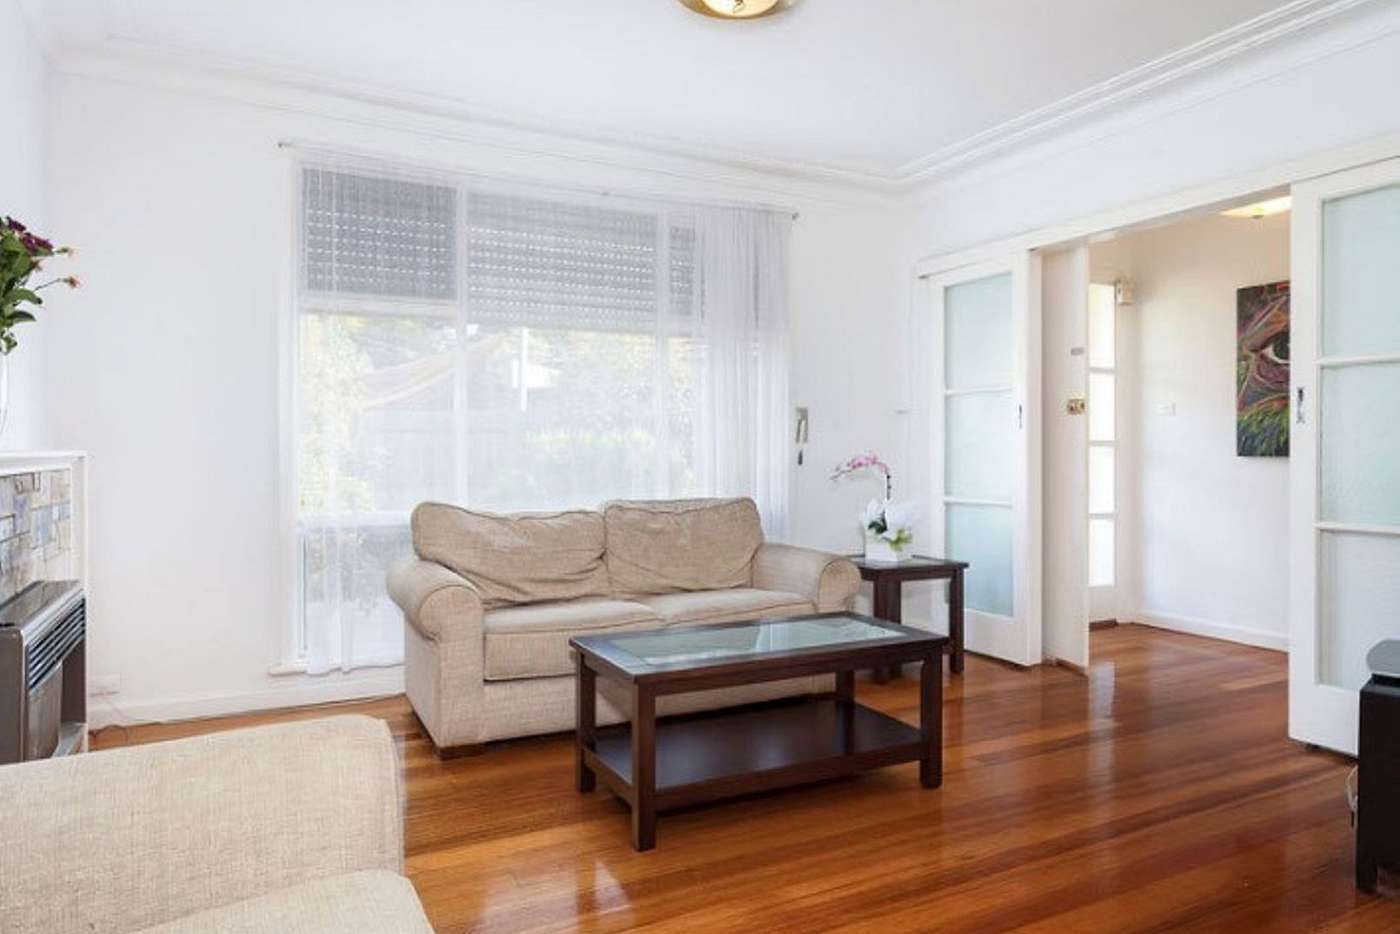 Seventh view of Homely house listing, 35 Booker Street, Cheltenham VIC 3192